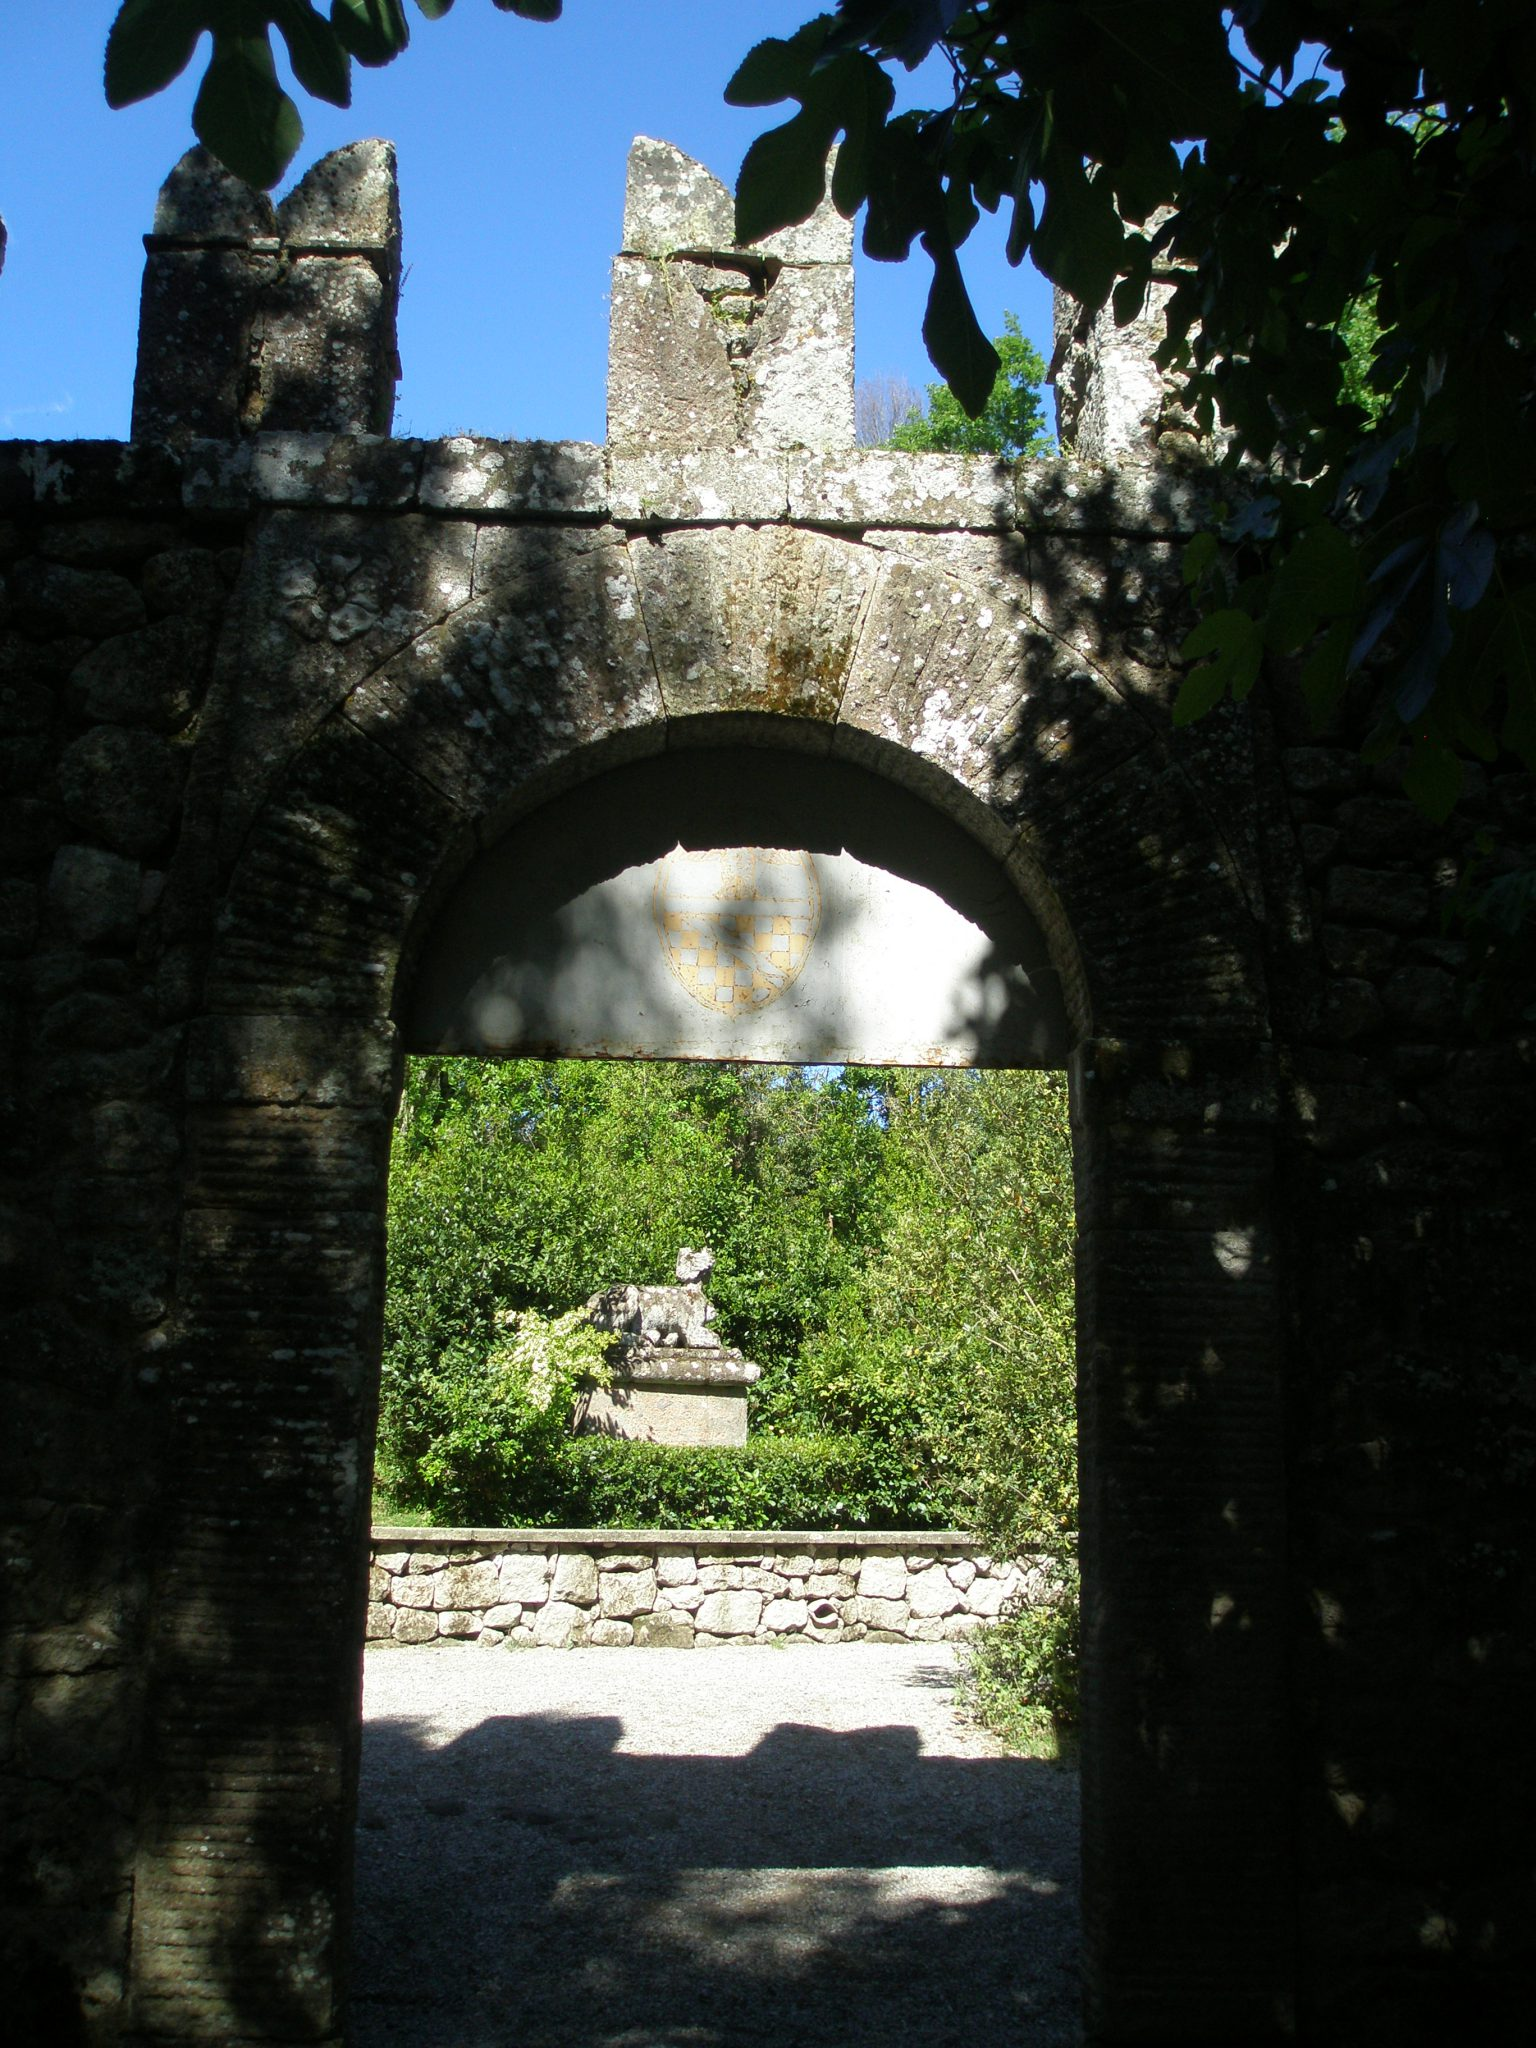 Gate to Garden, with view of a Sphinx, just inside.